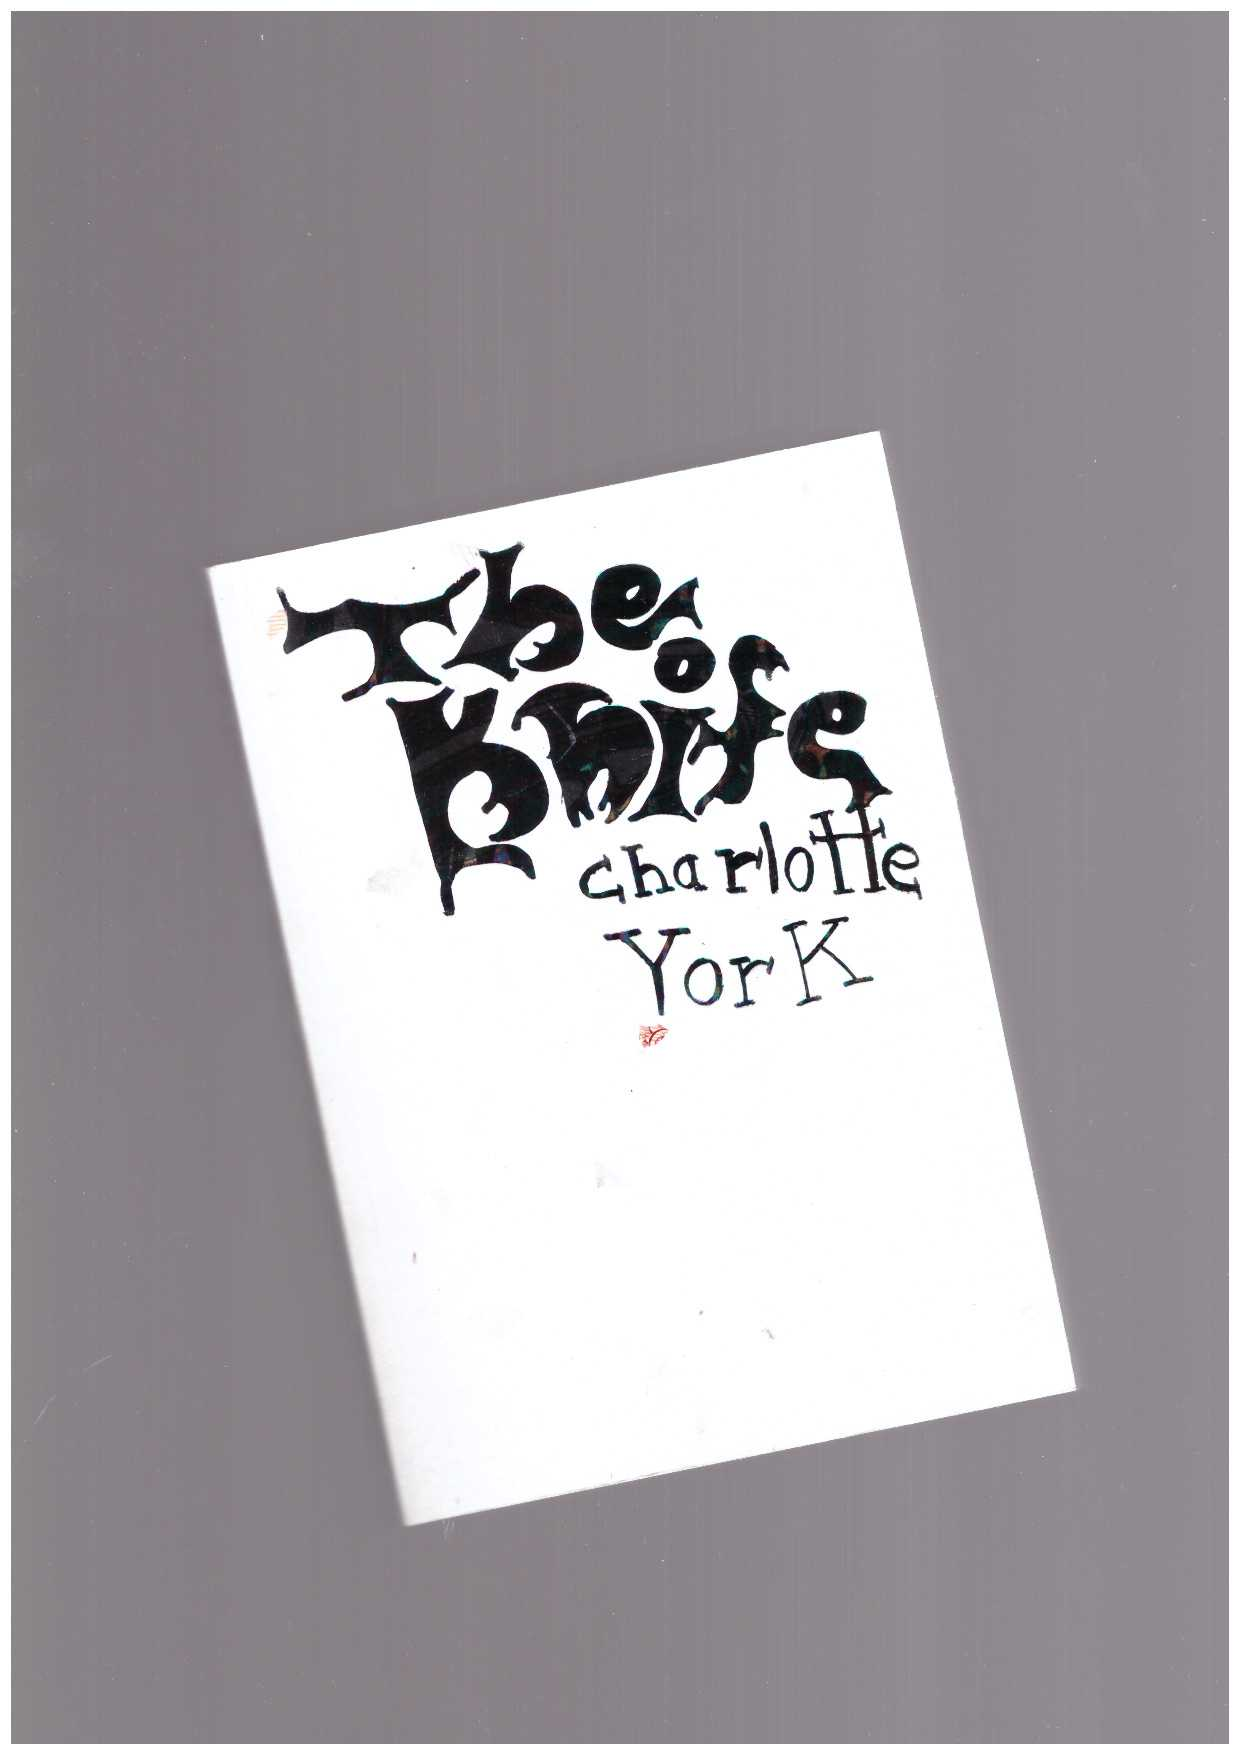 YORK, Charlotte - The Knife